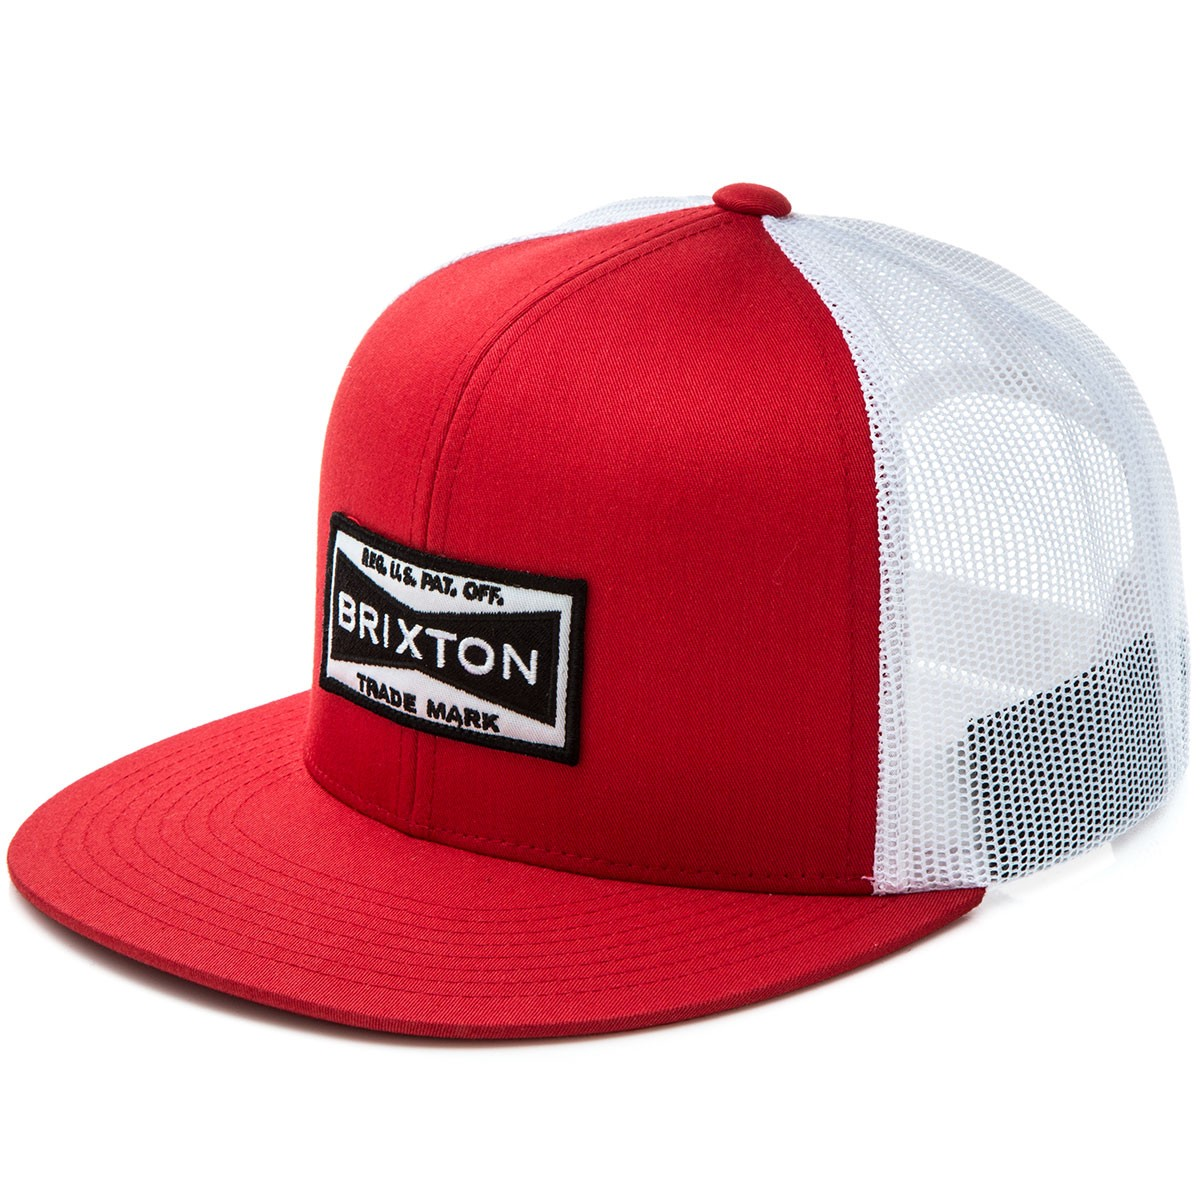 Brixton Fuel Mesh Hat - Red White 80baee56569